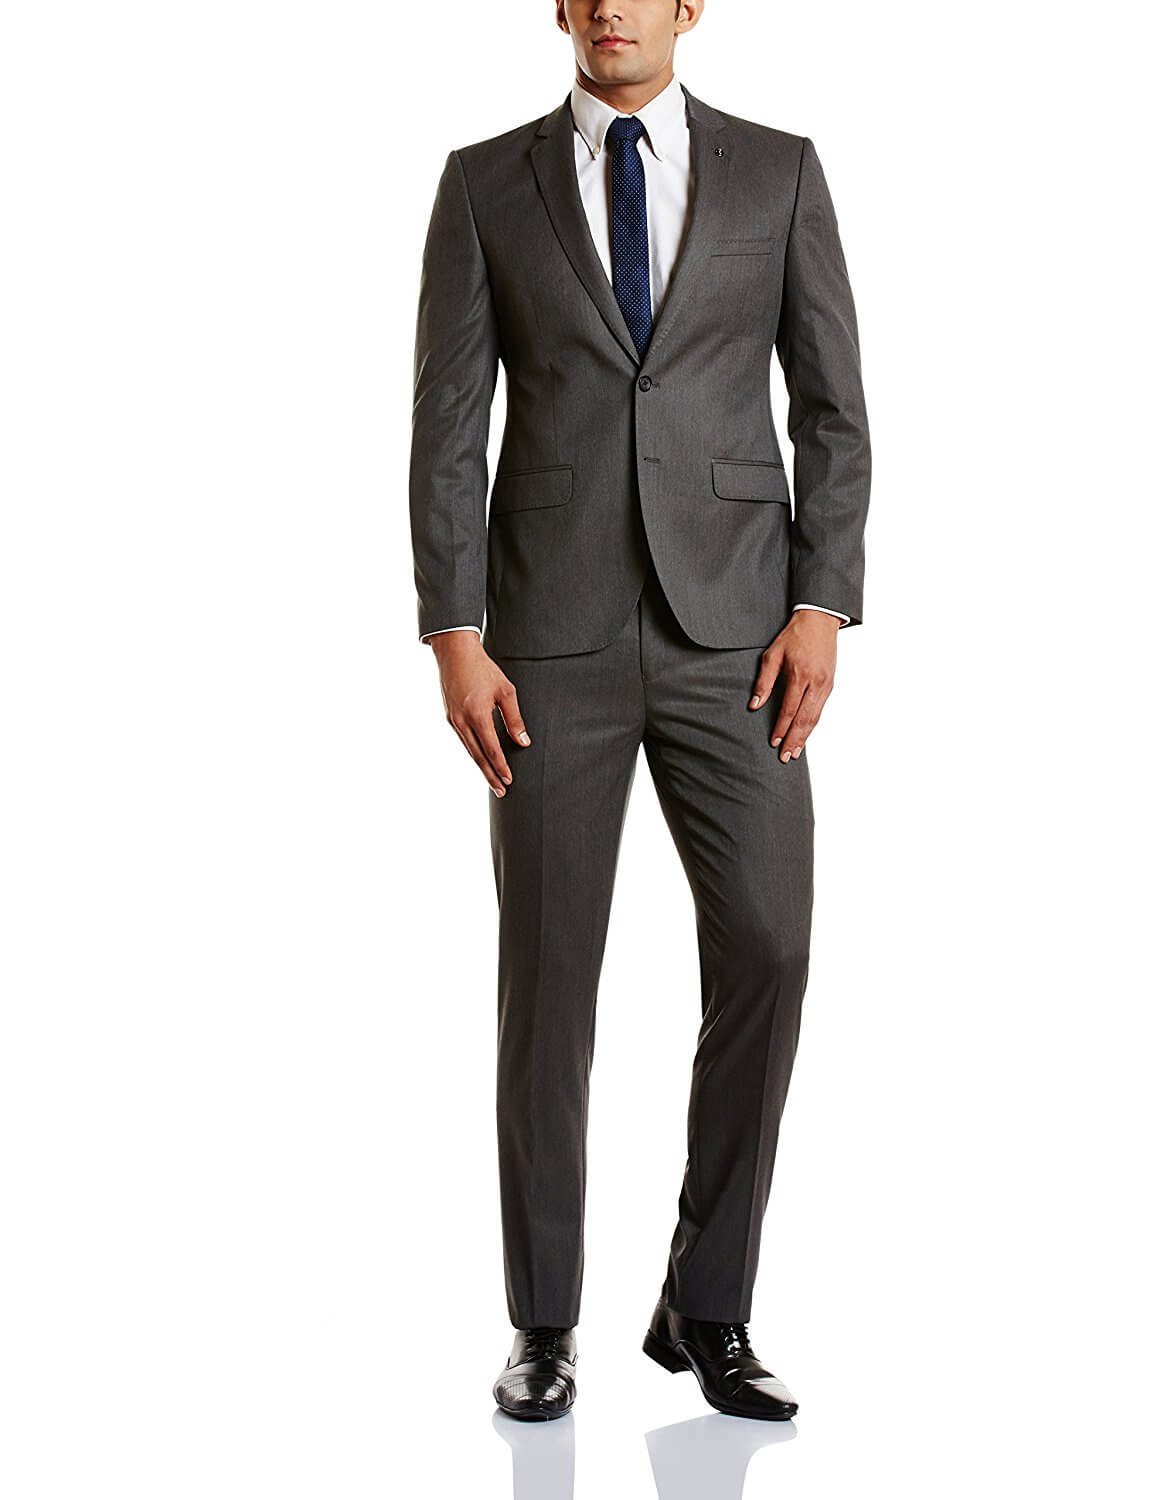 Raymond - Men's Suits